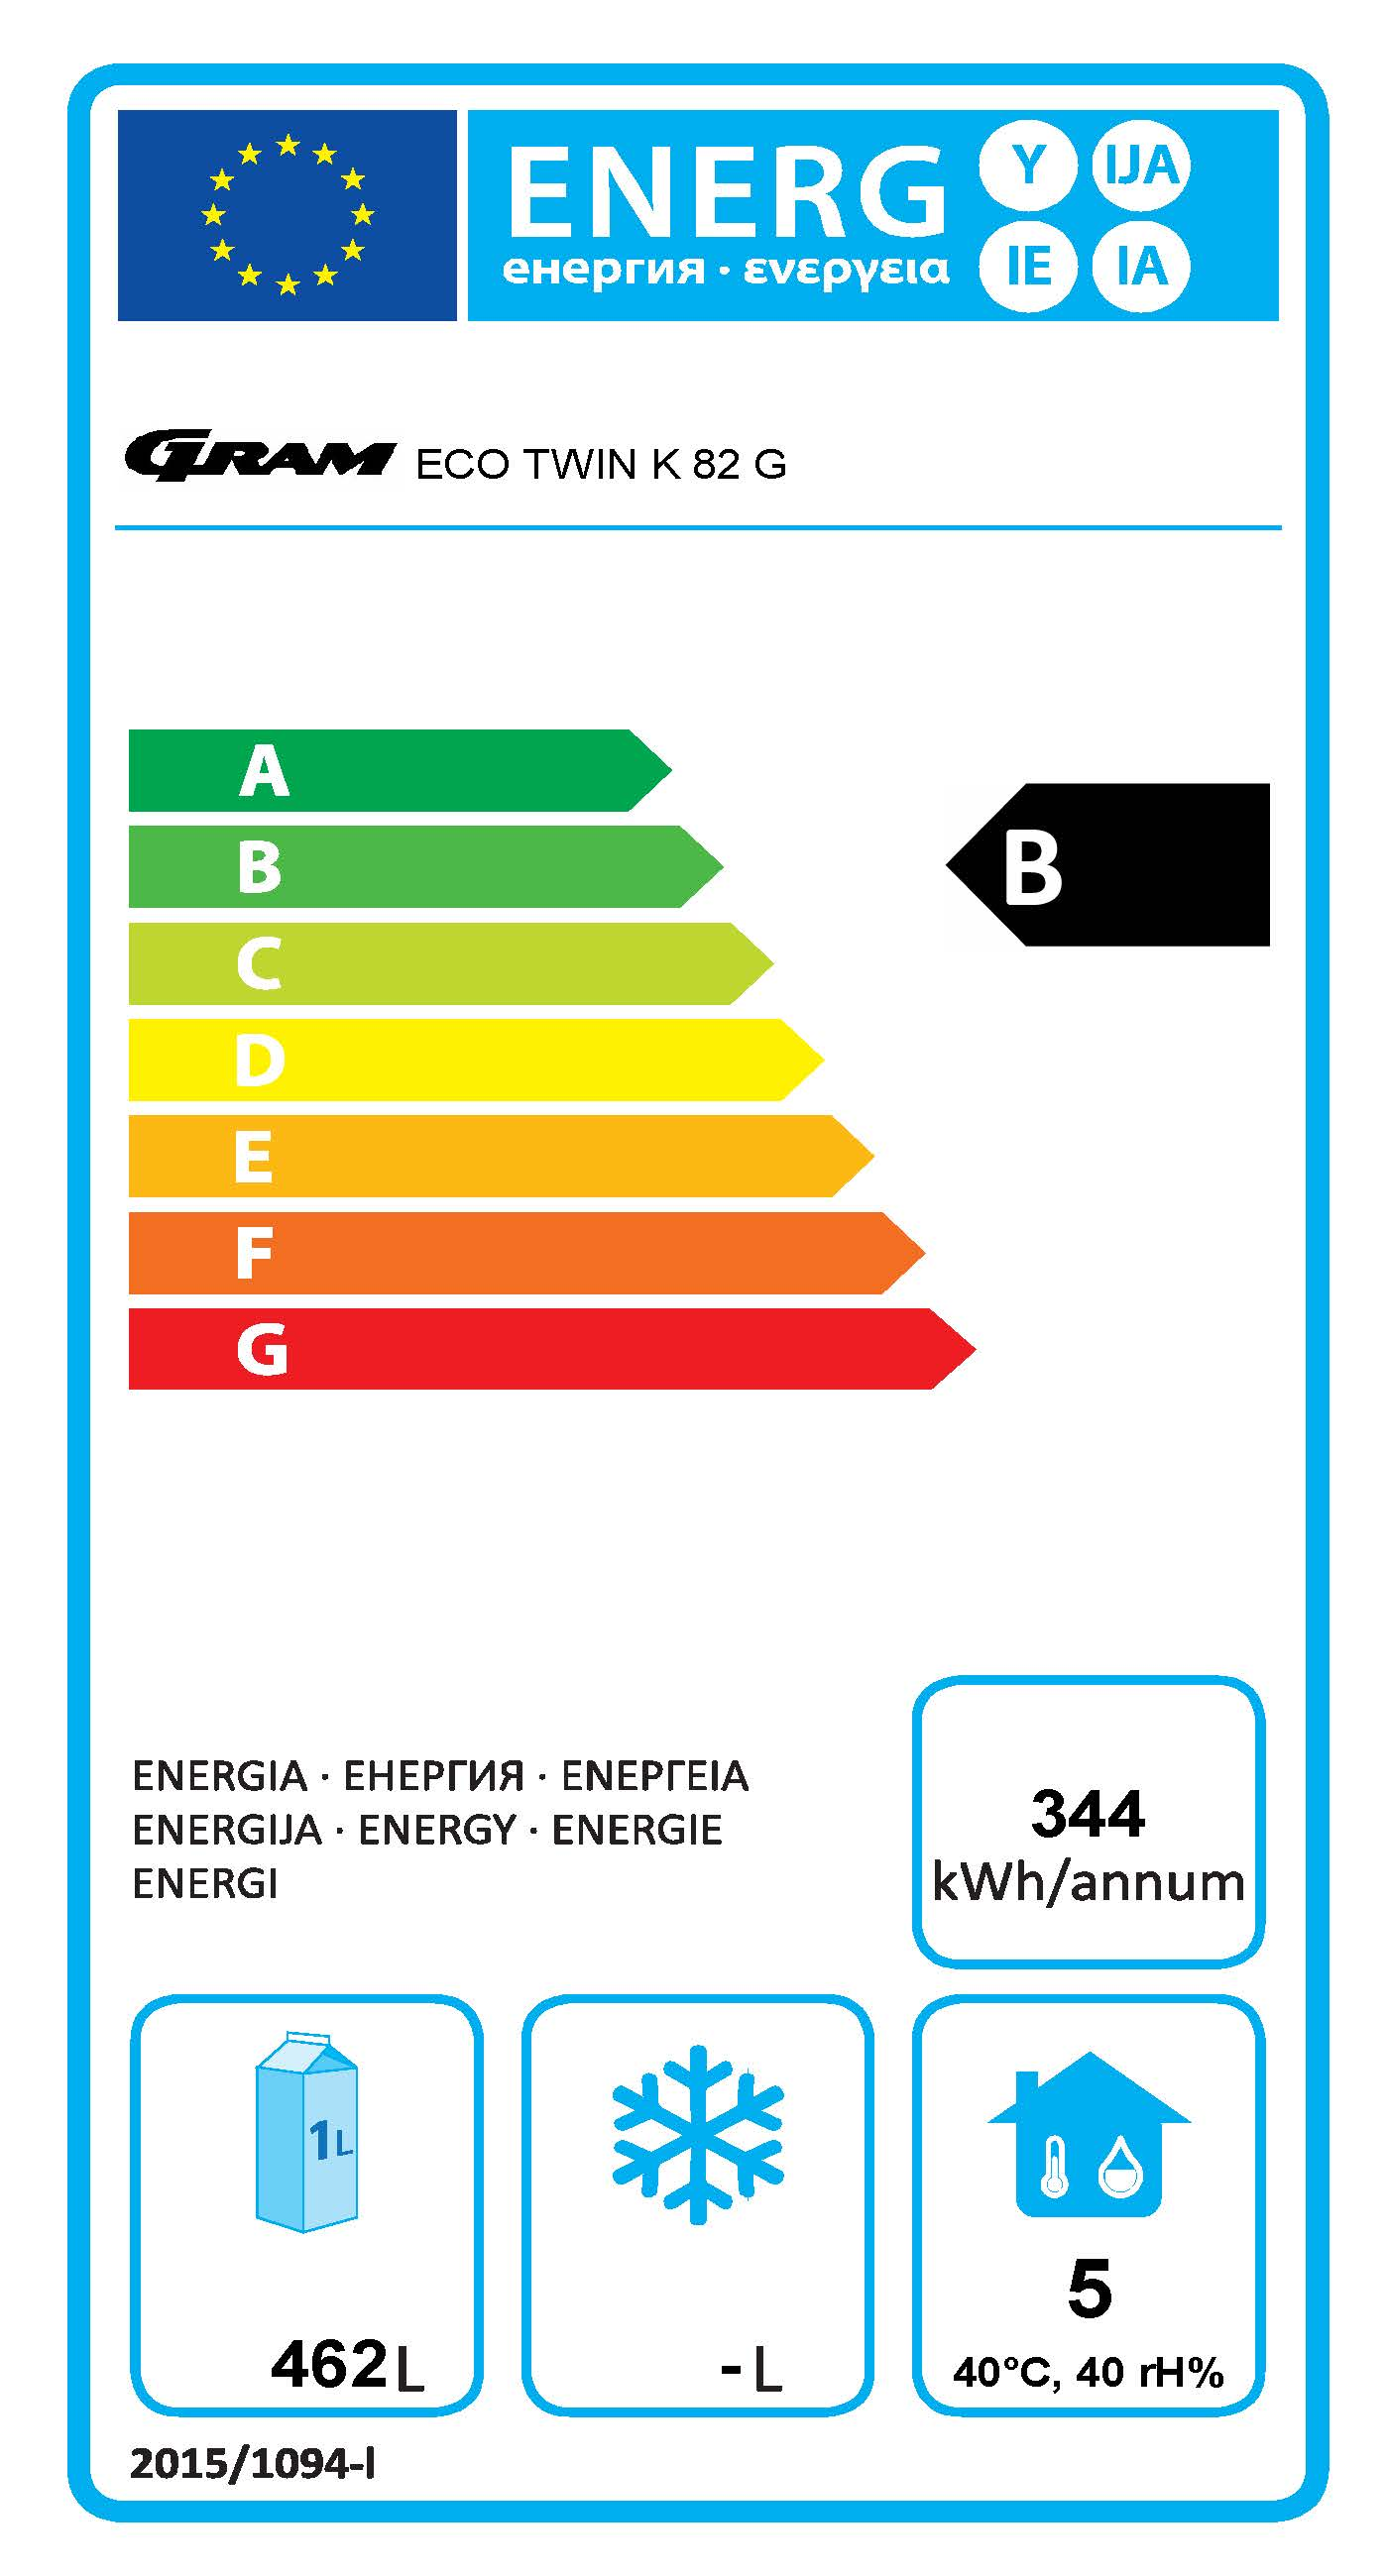 ECO TWIN K 82 CCG C1 4N 2/1 GN Upright Refrigerator Energy Rating